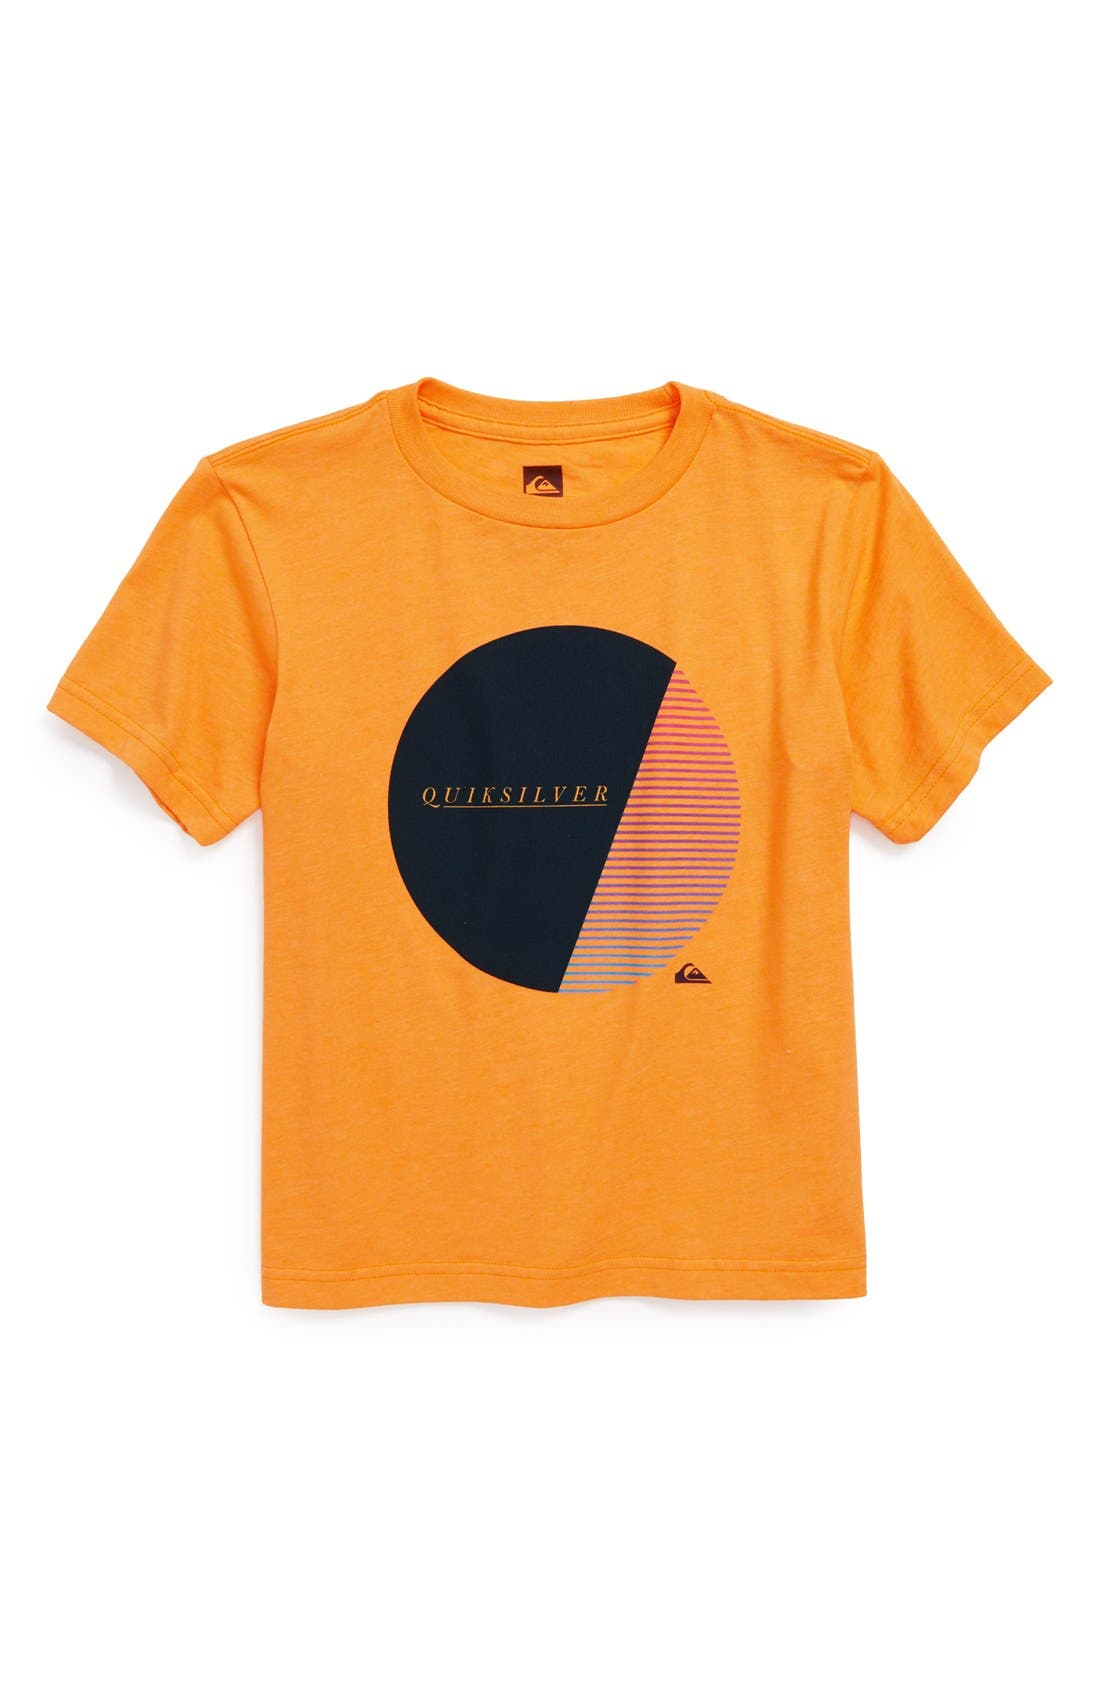 Alternate Image 1 Selected - Quiksilver 'Did the Trick' T-Shirt (Big Boys)